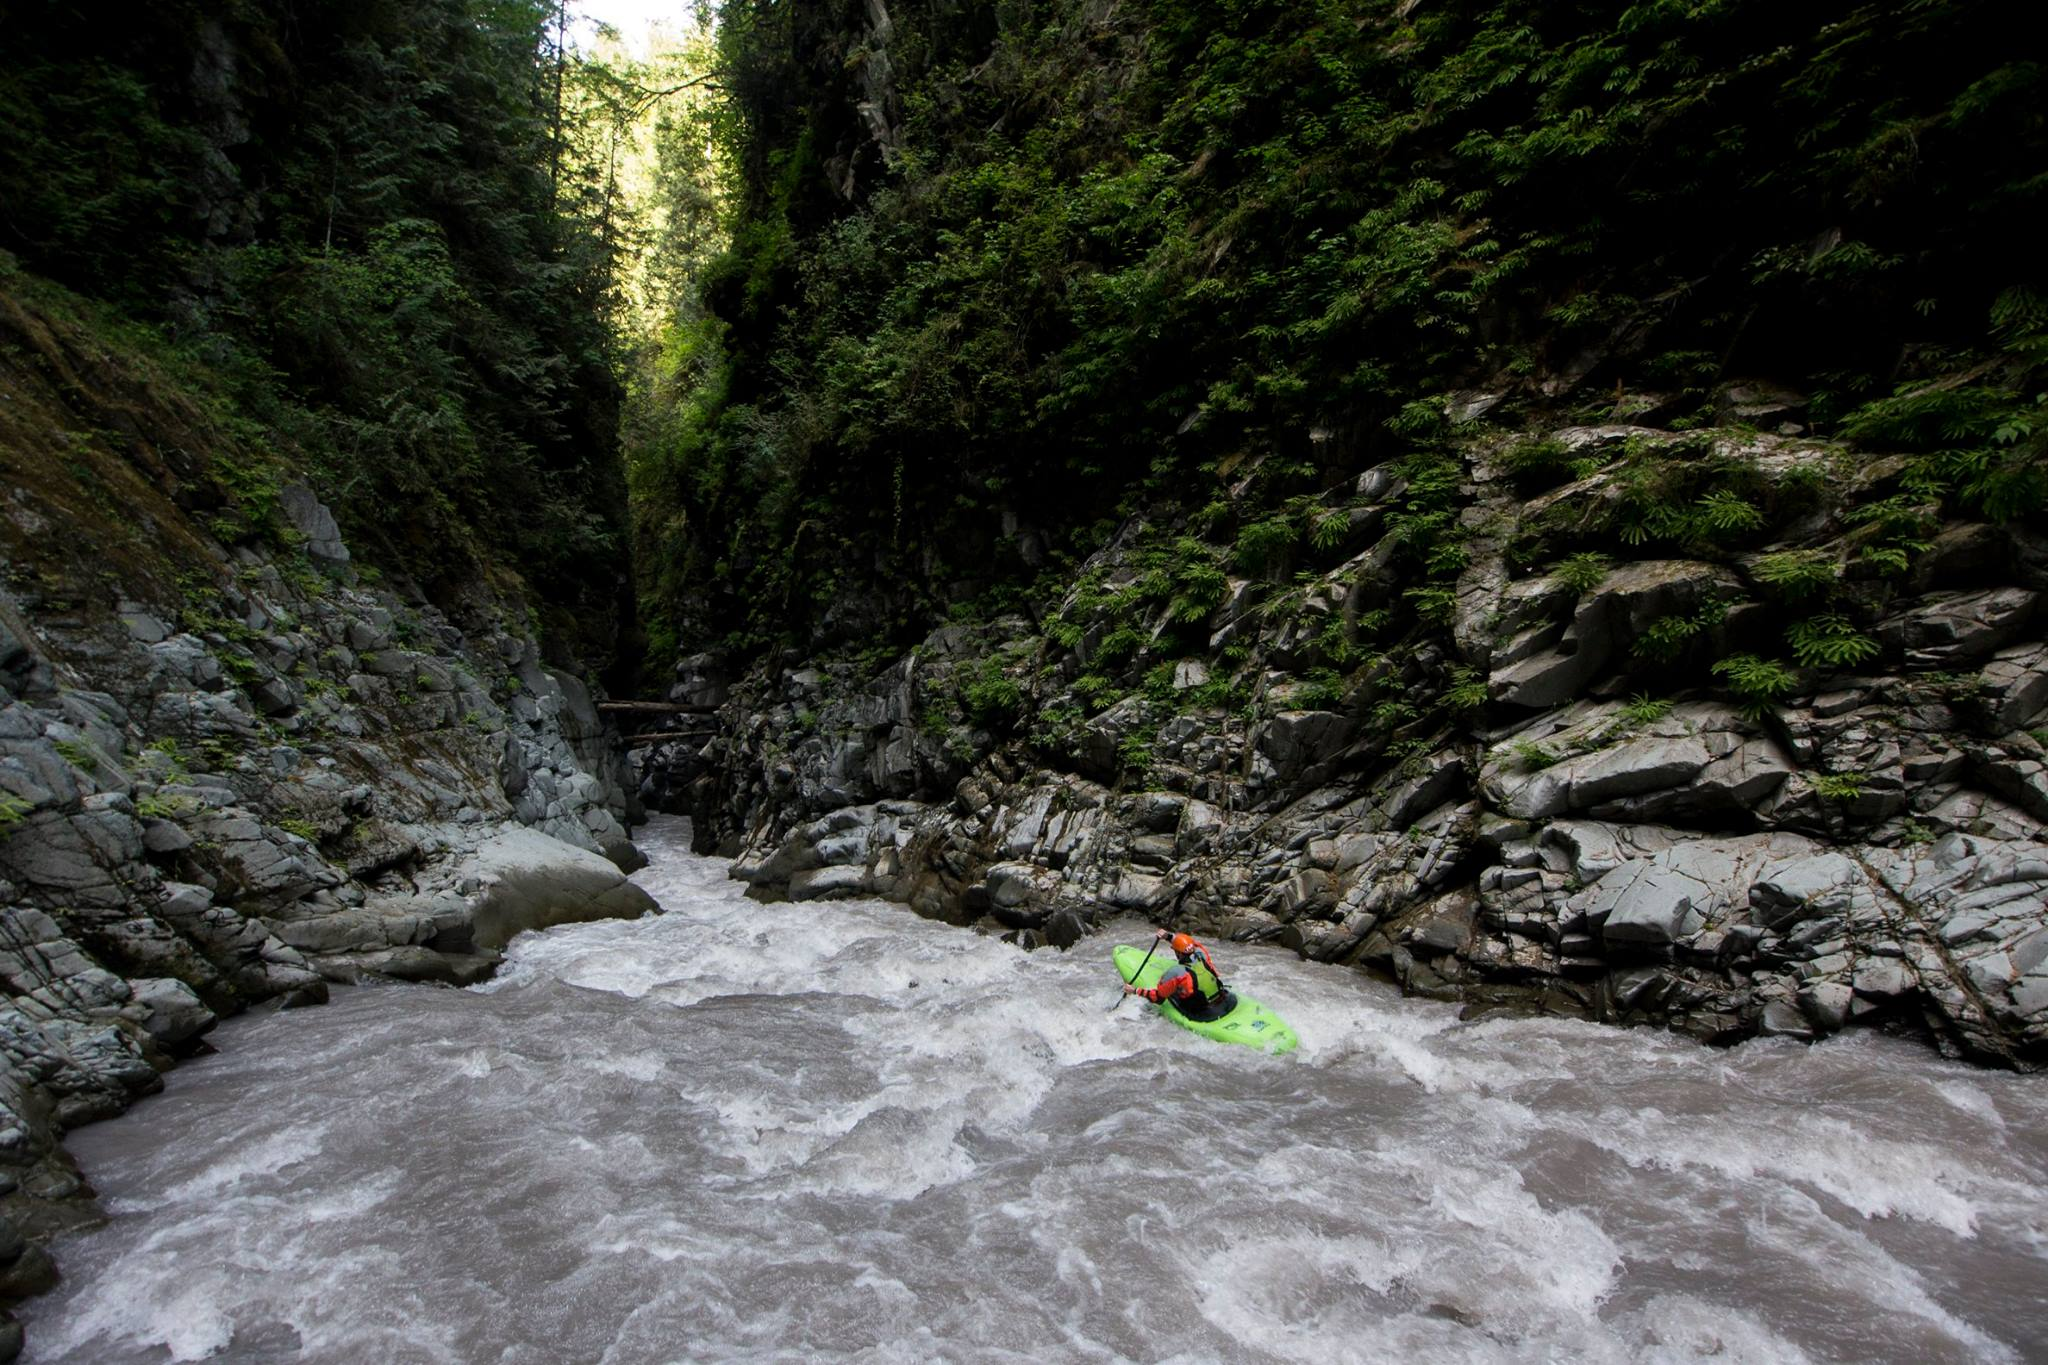 Click image for larger version  Name:Classic gorge.jpg Views:110 Size:441.0 KB ID:10294